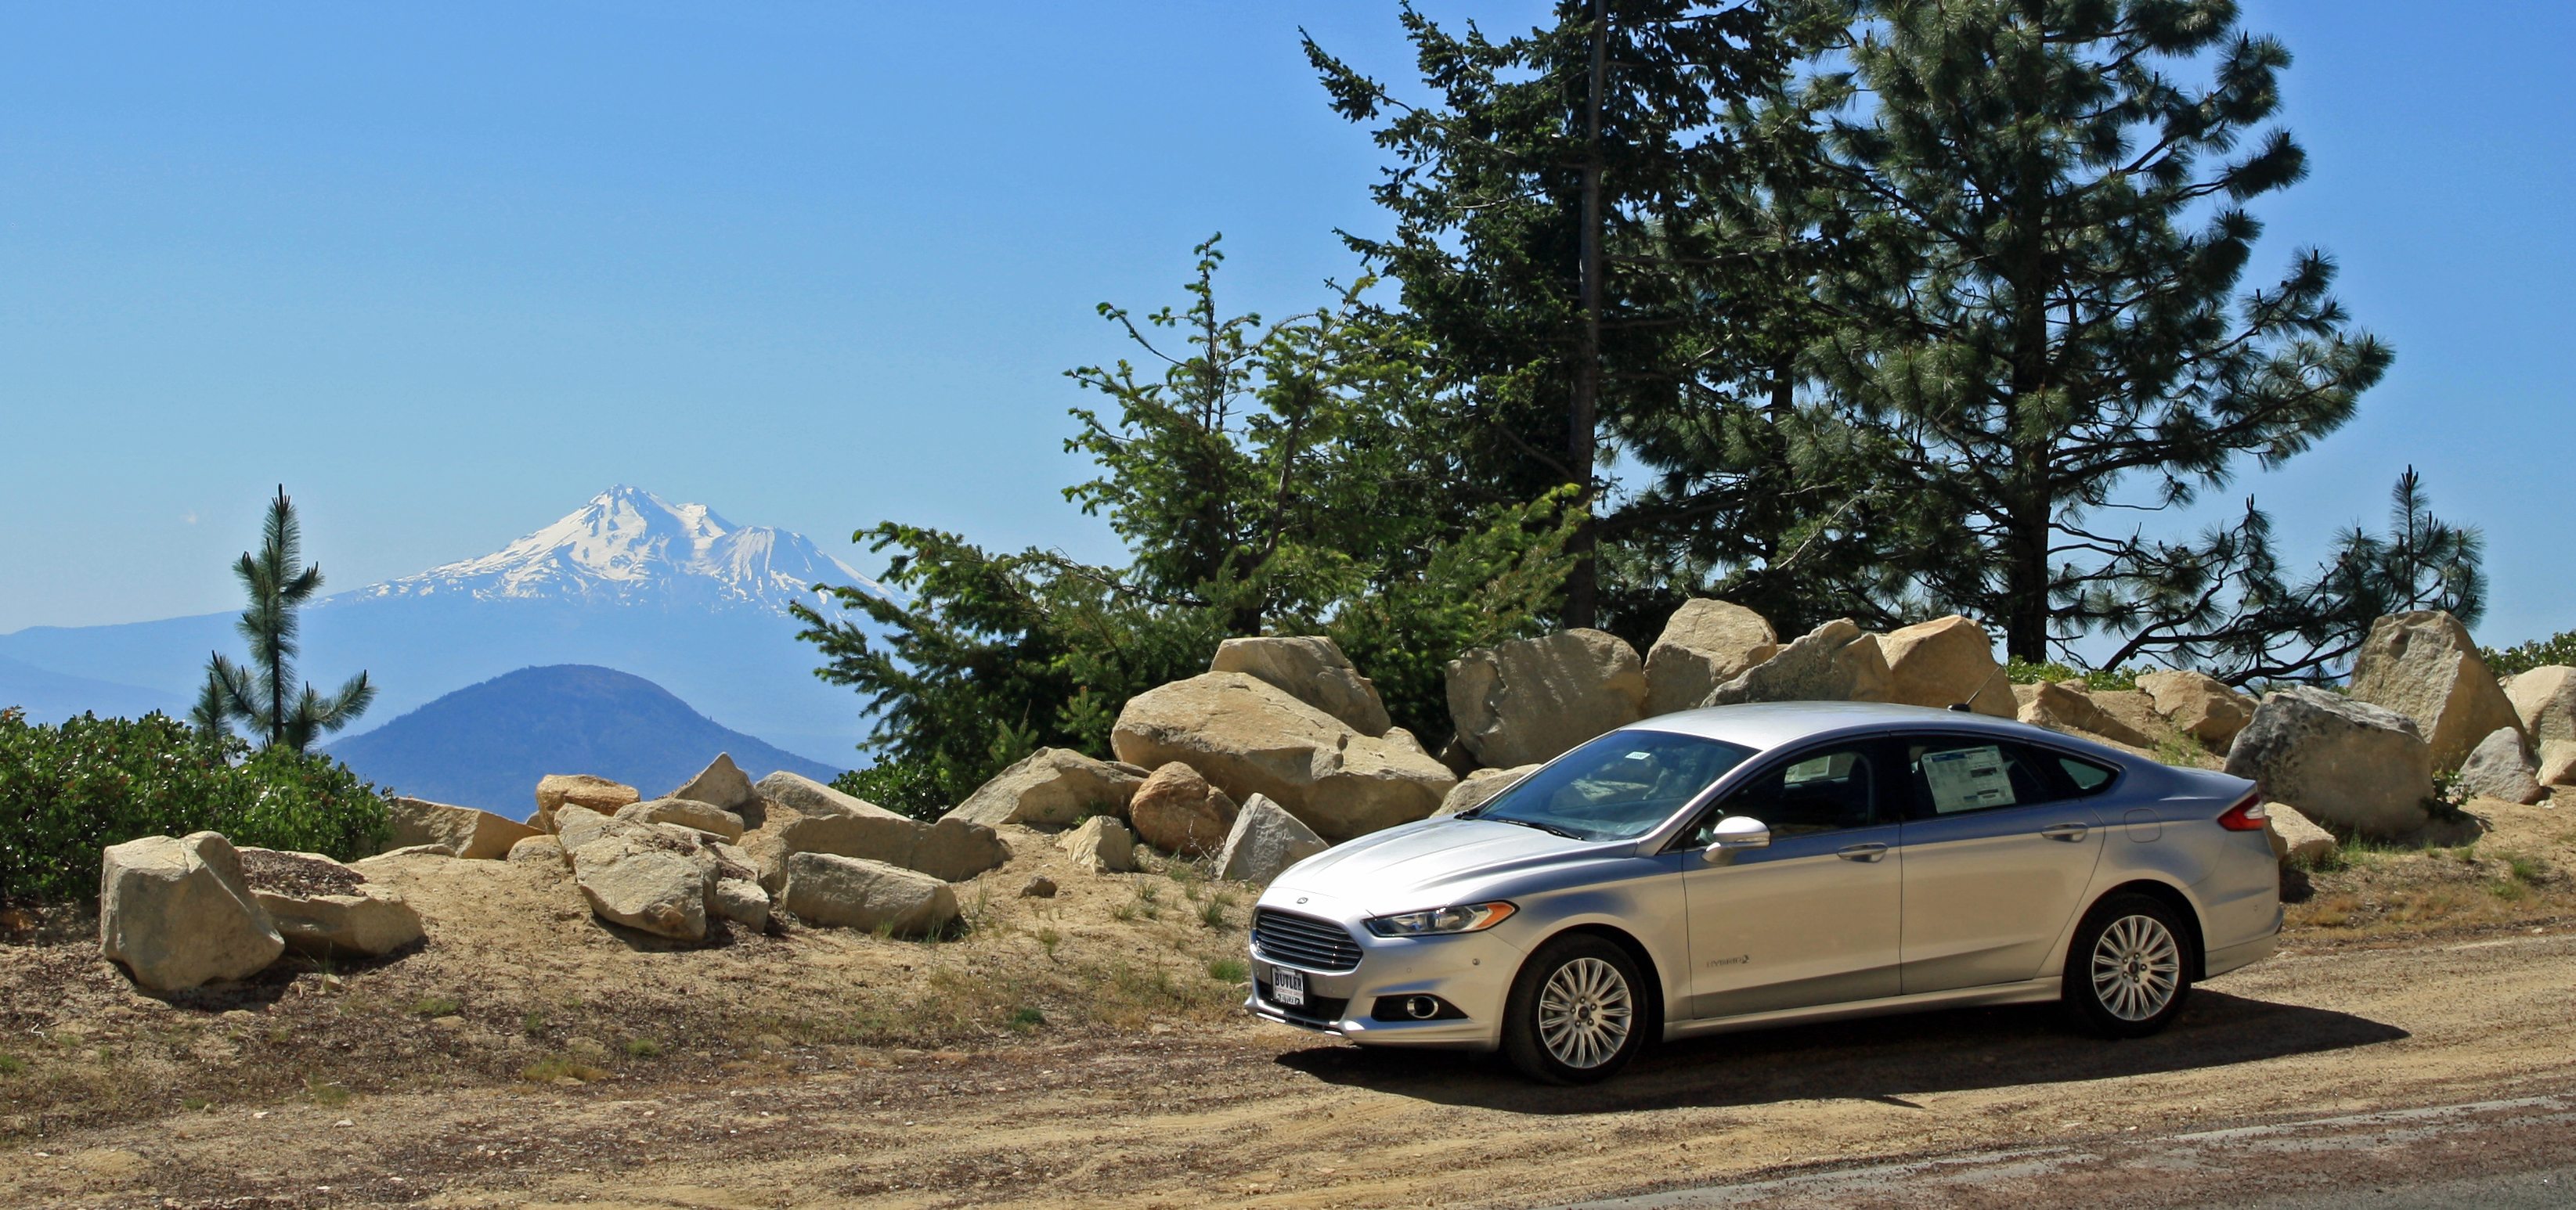 2013 Ford Fusion Hybrid with Mt. Shasta in the background.